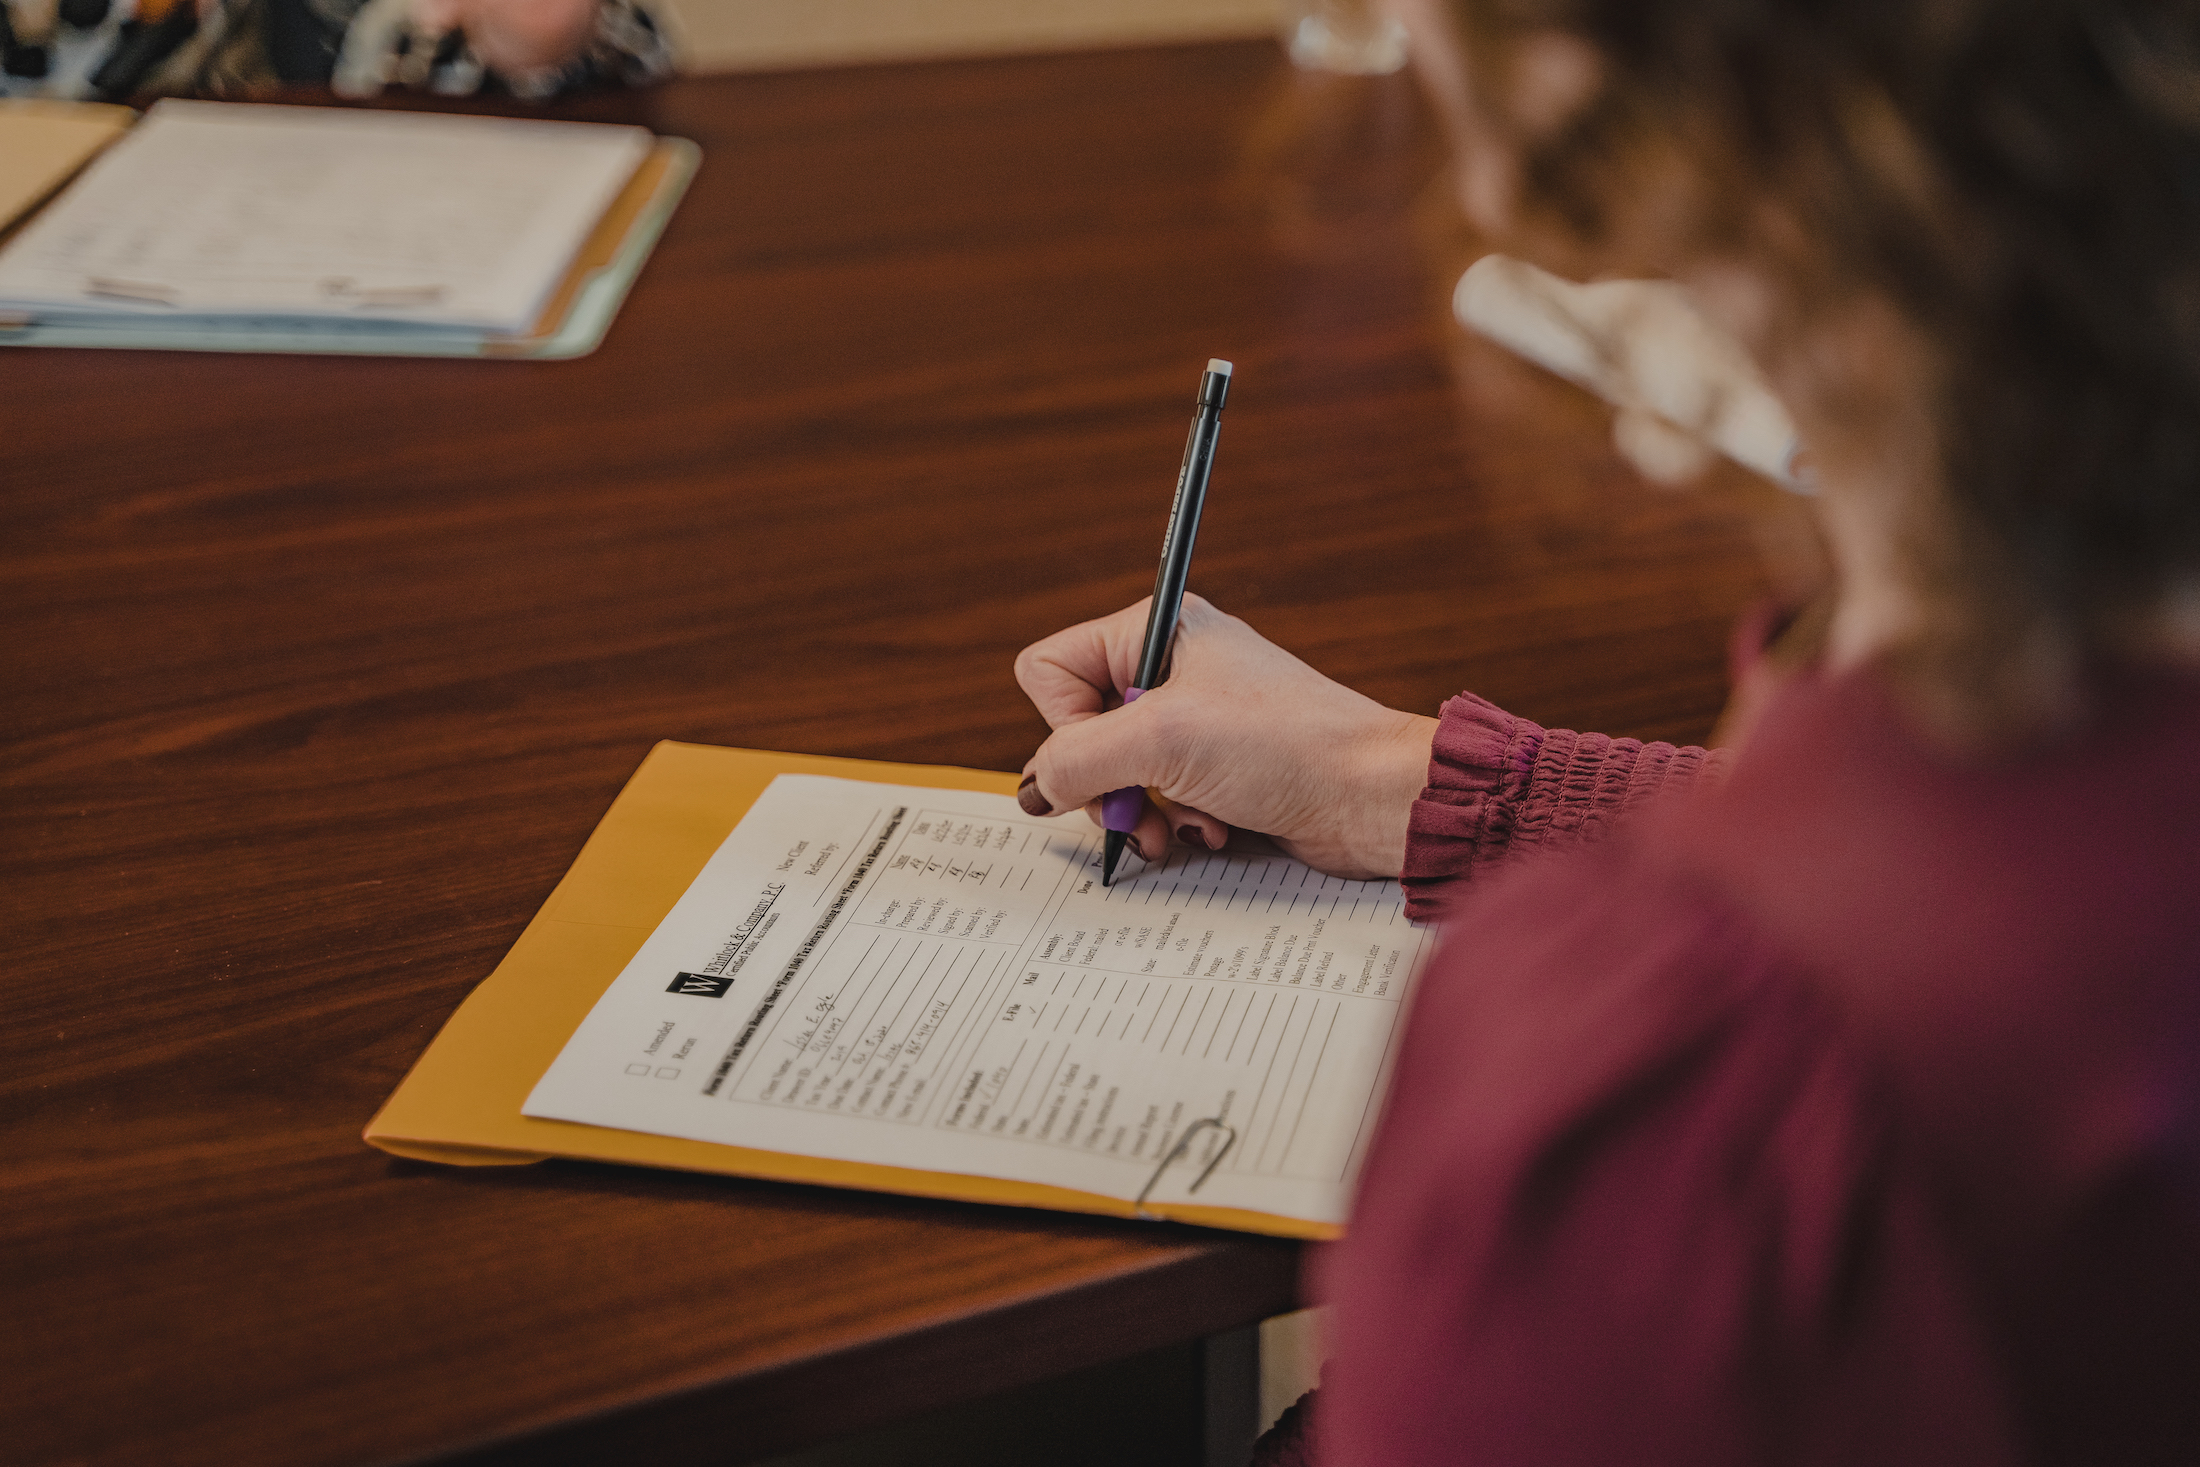 and employee at whitlock and company writing on a piece of paper related to personal accounting services provided at whitlock accounting services